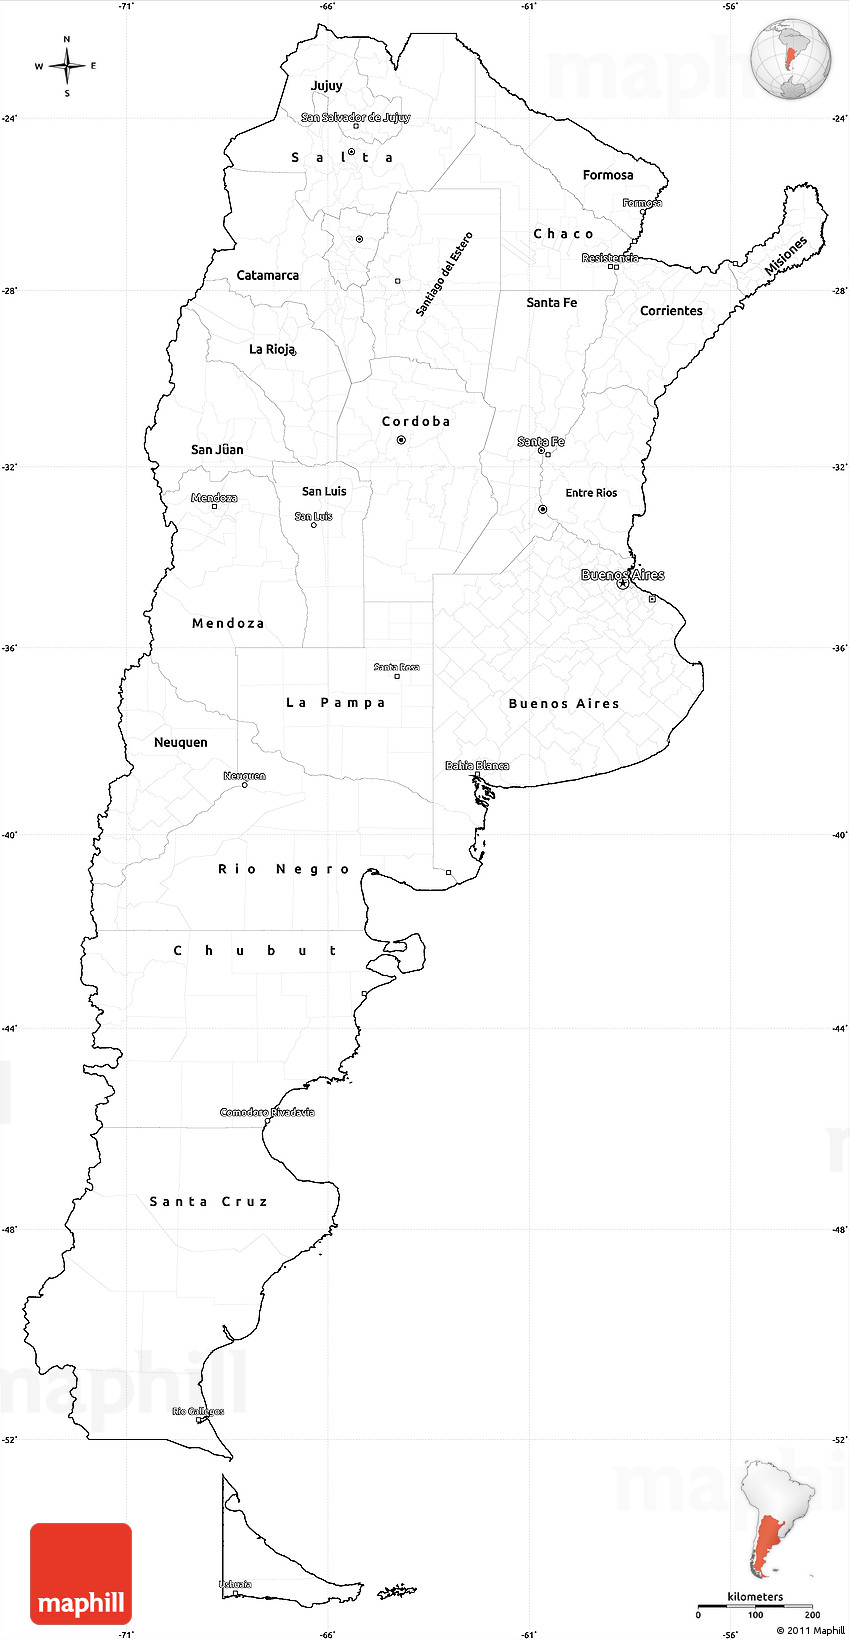 Blank Simple Map of Argentina cropped outside